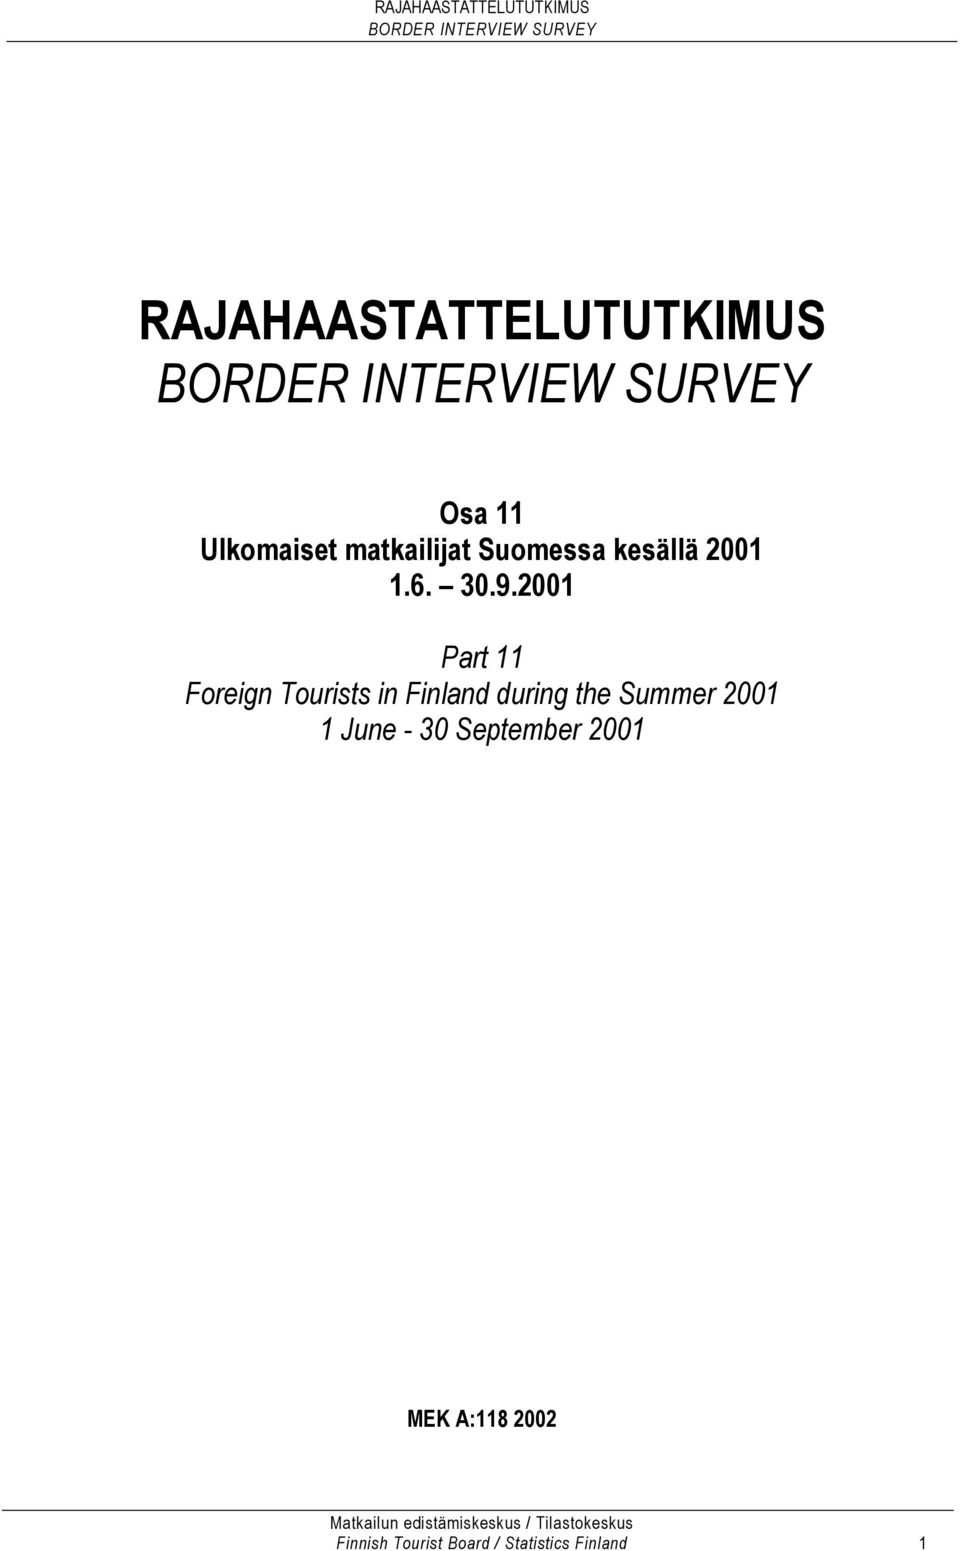 2001 Part 11 Foreign Tourists in Finland during the Summer